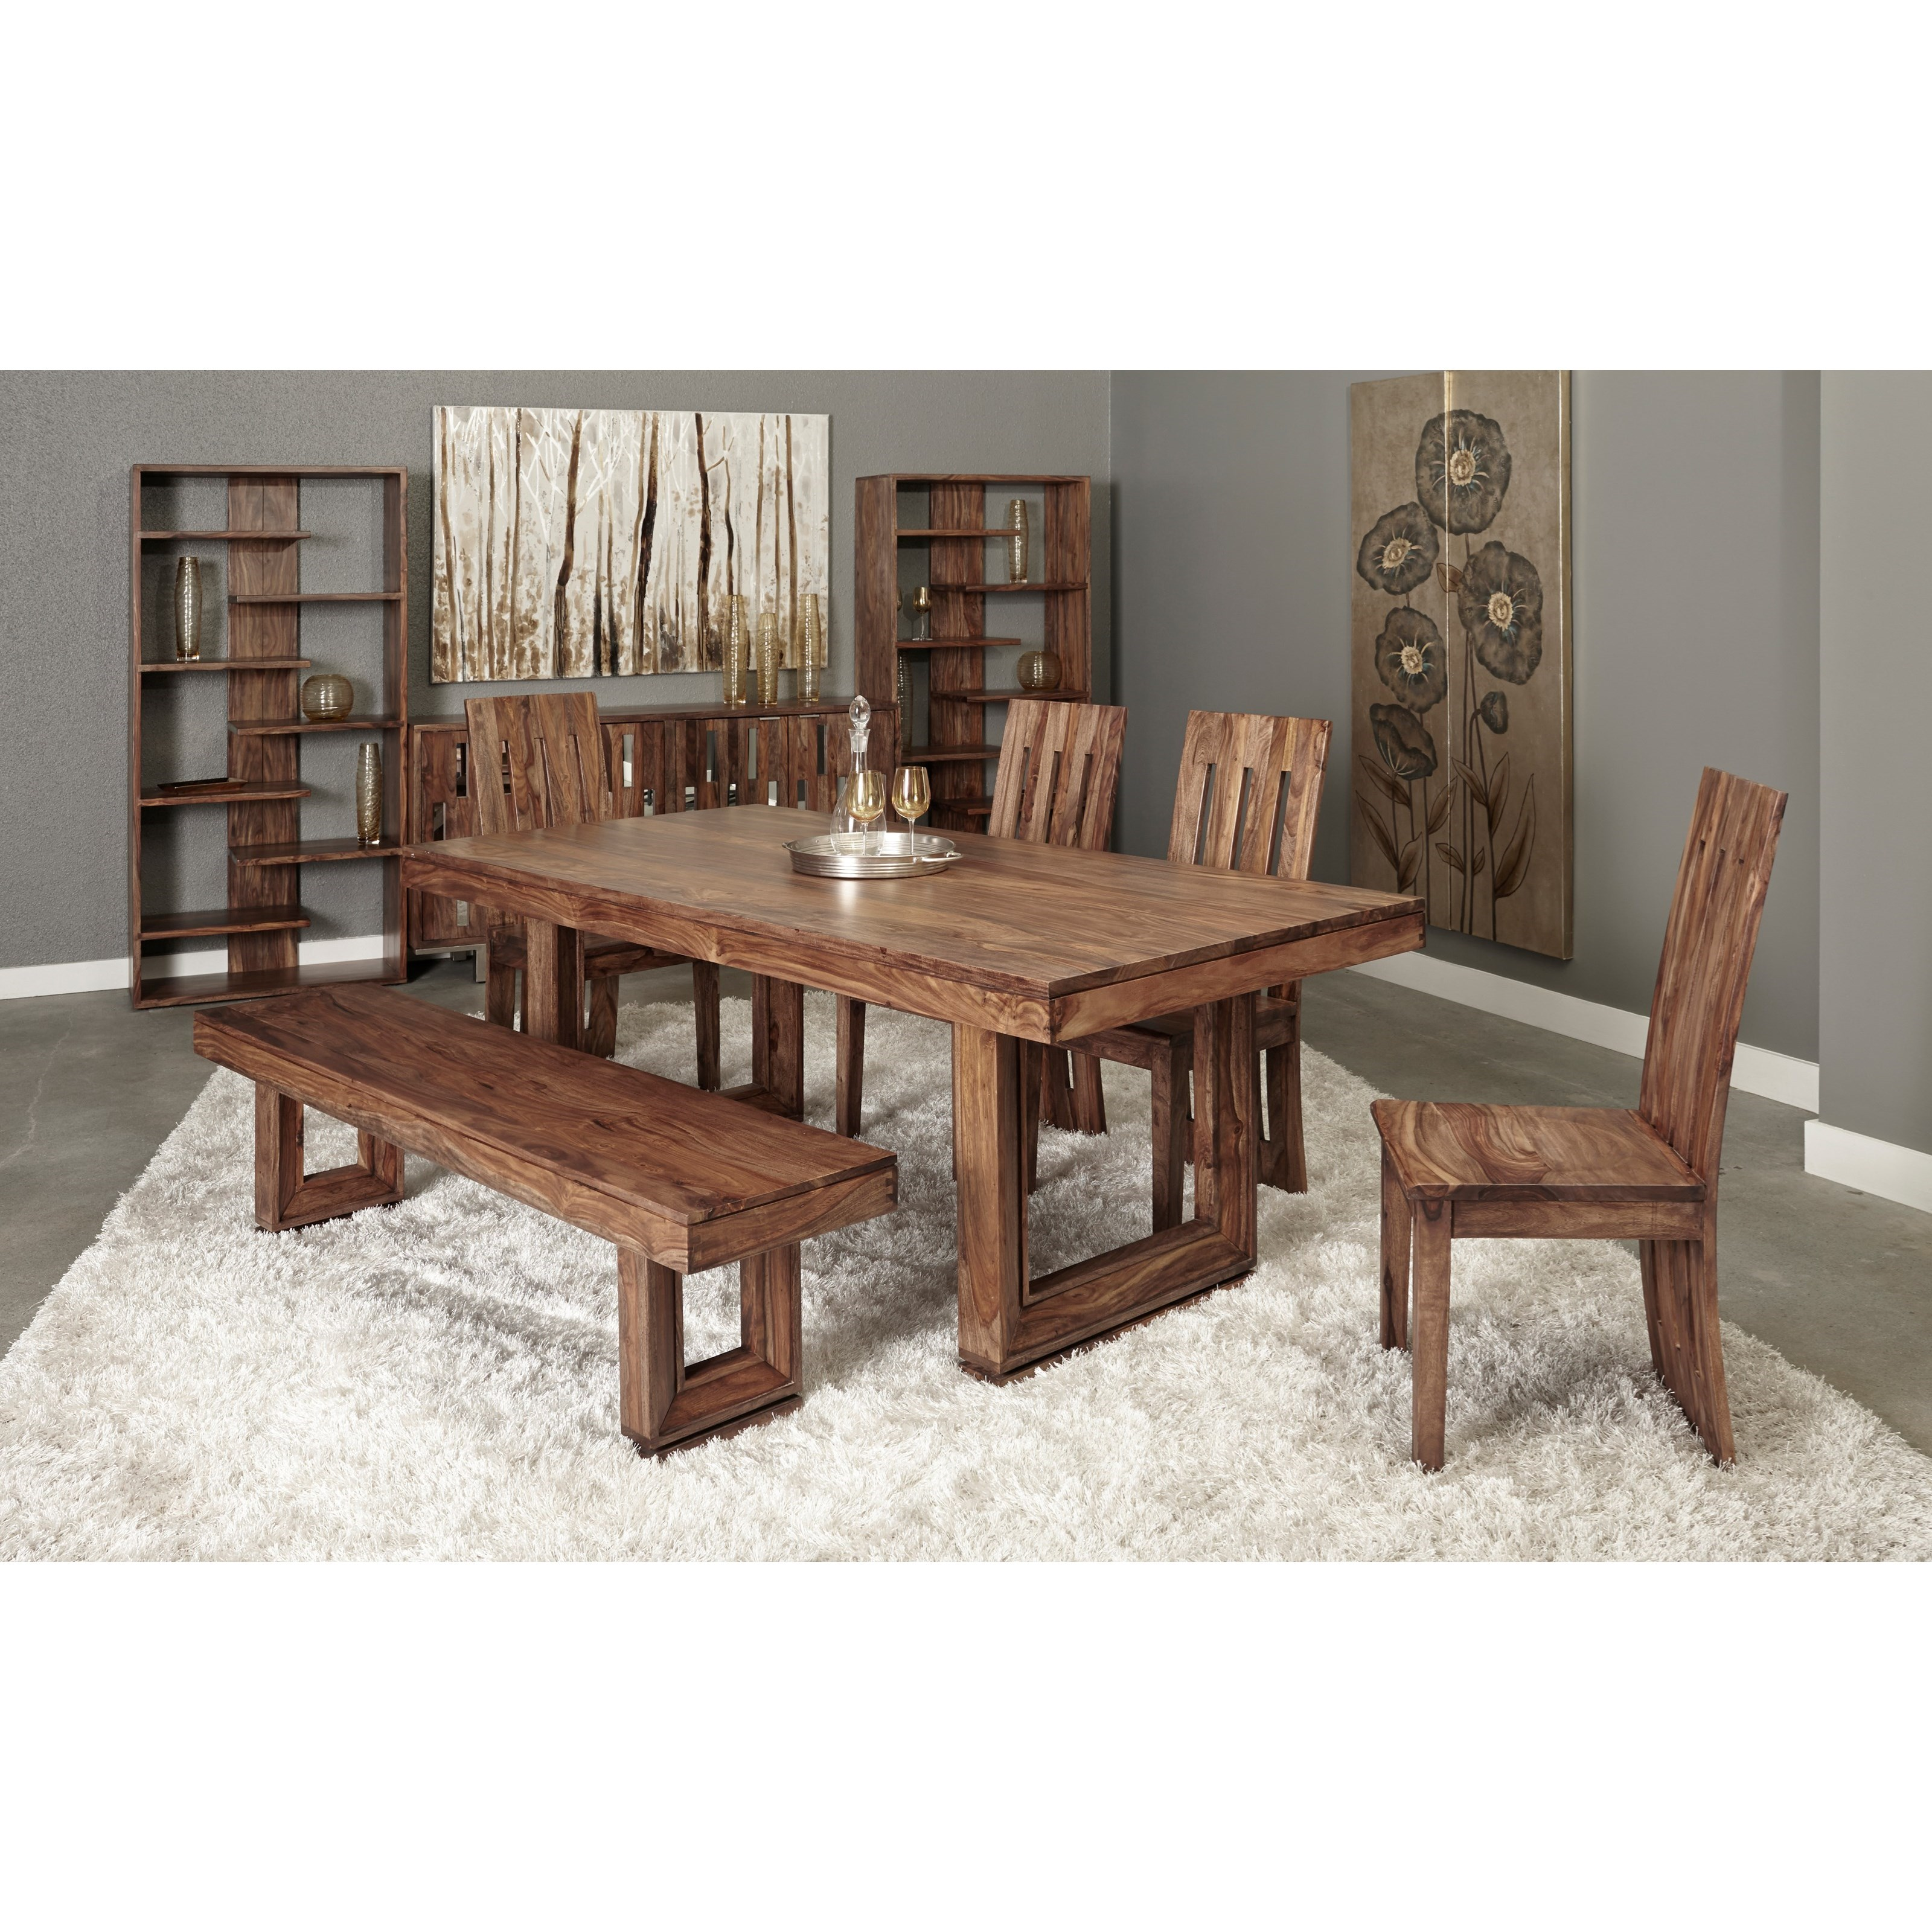 Brownstone Dining Room Group by Coast to Coast Imports at Zak's Home